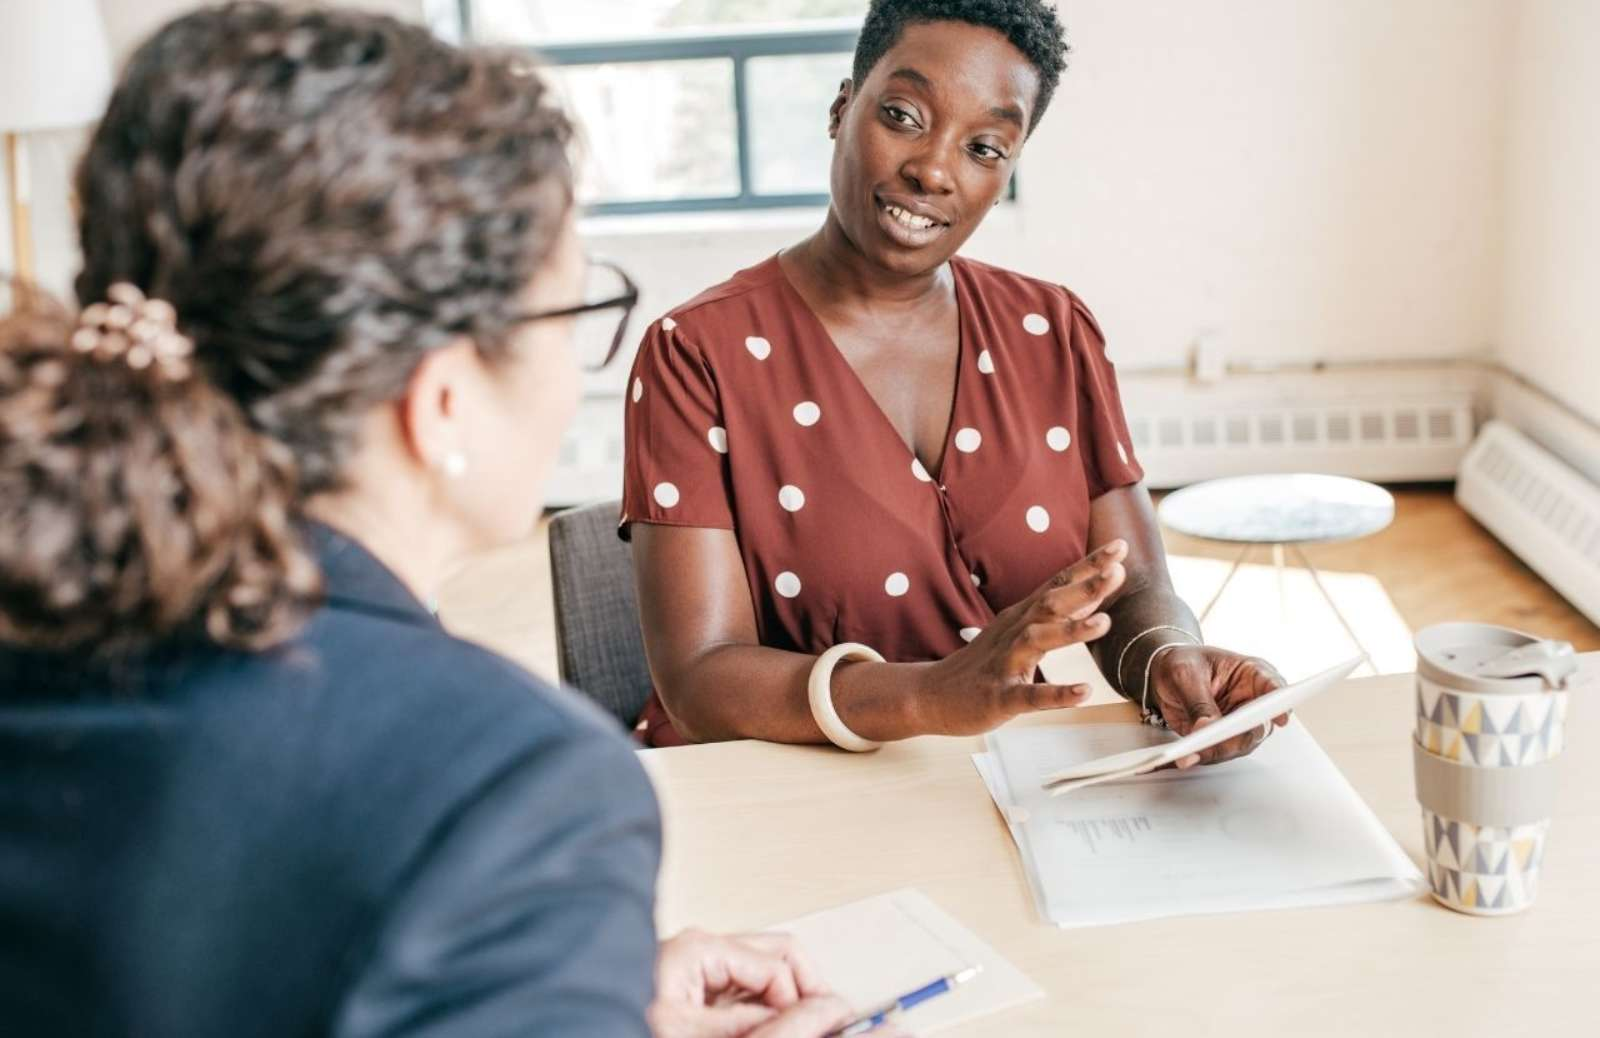 Two women at an interview in an office setting